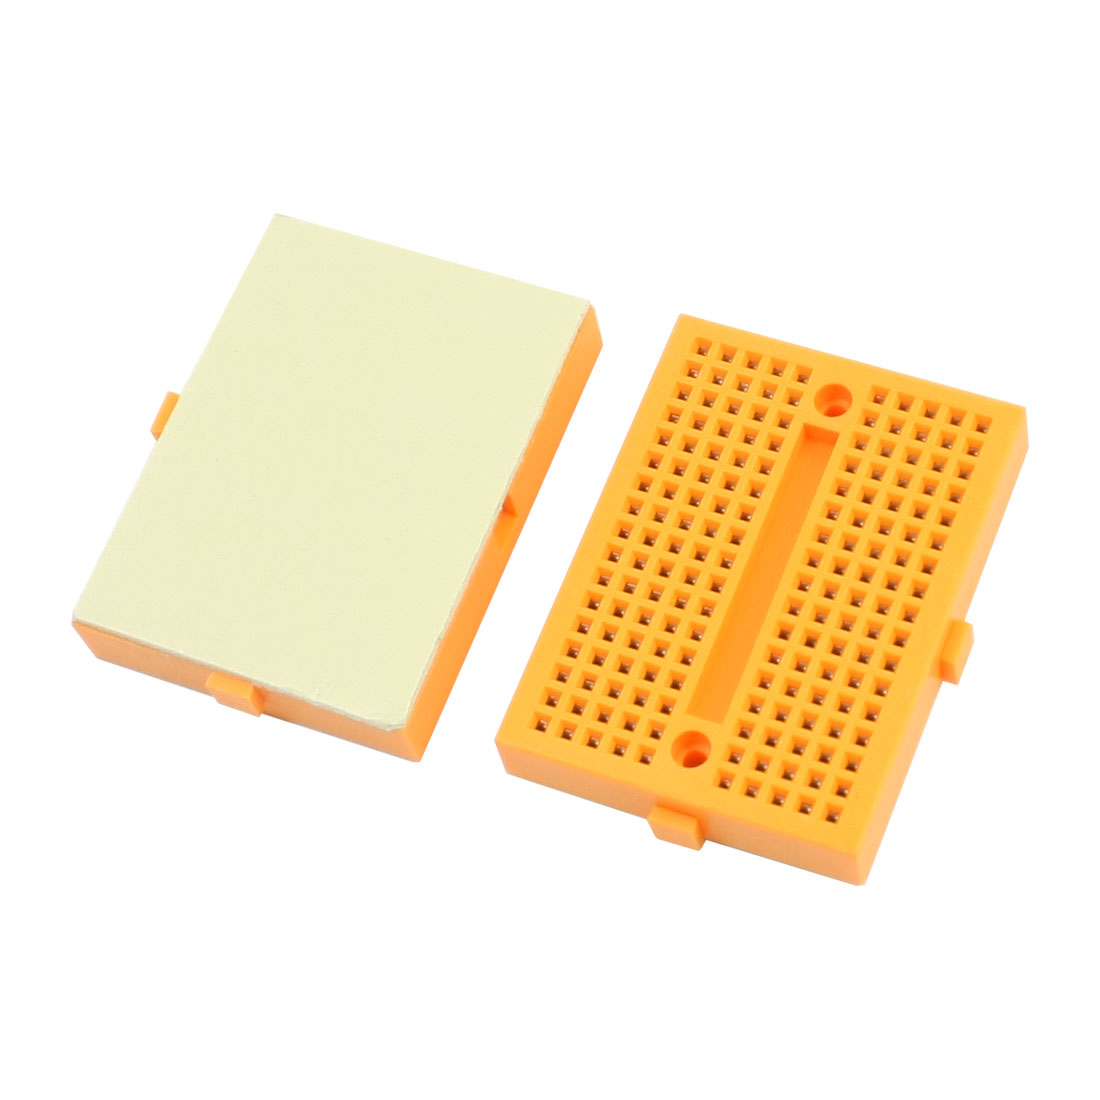 2pcs Yellow 170 Tie Point PCB Prototype Solderless Breadboard 45 x 35 x 8mm SYB-170